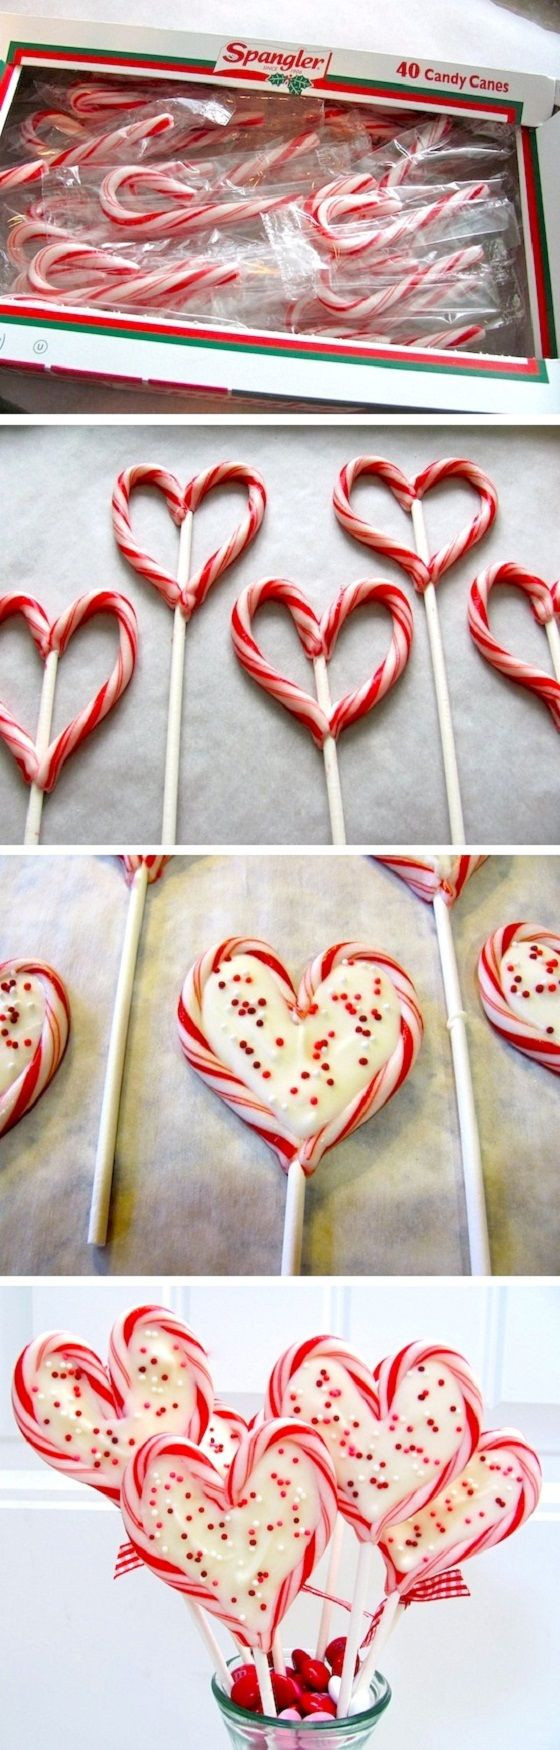 Heart Candy Christmas  Candy Cane heart shaped lipop Just bake at 300F for 3